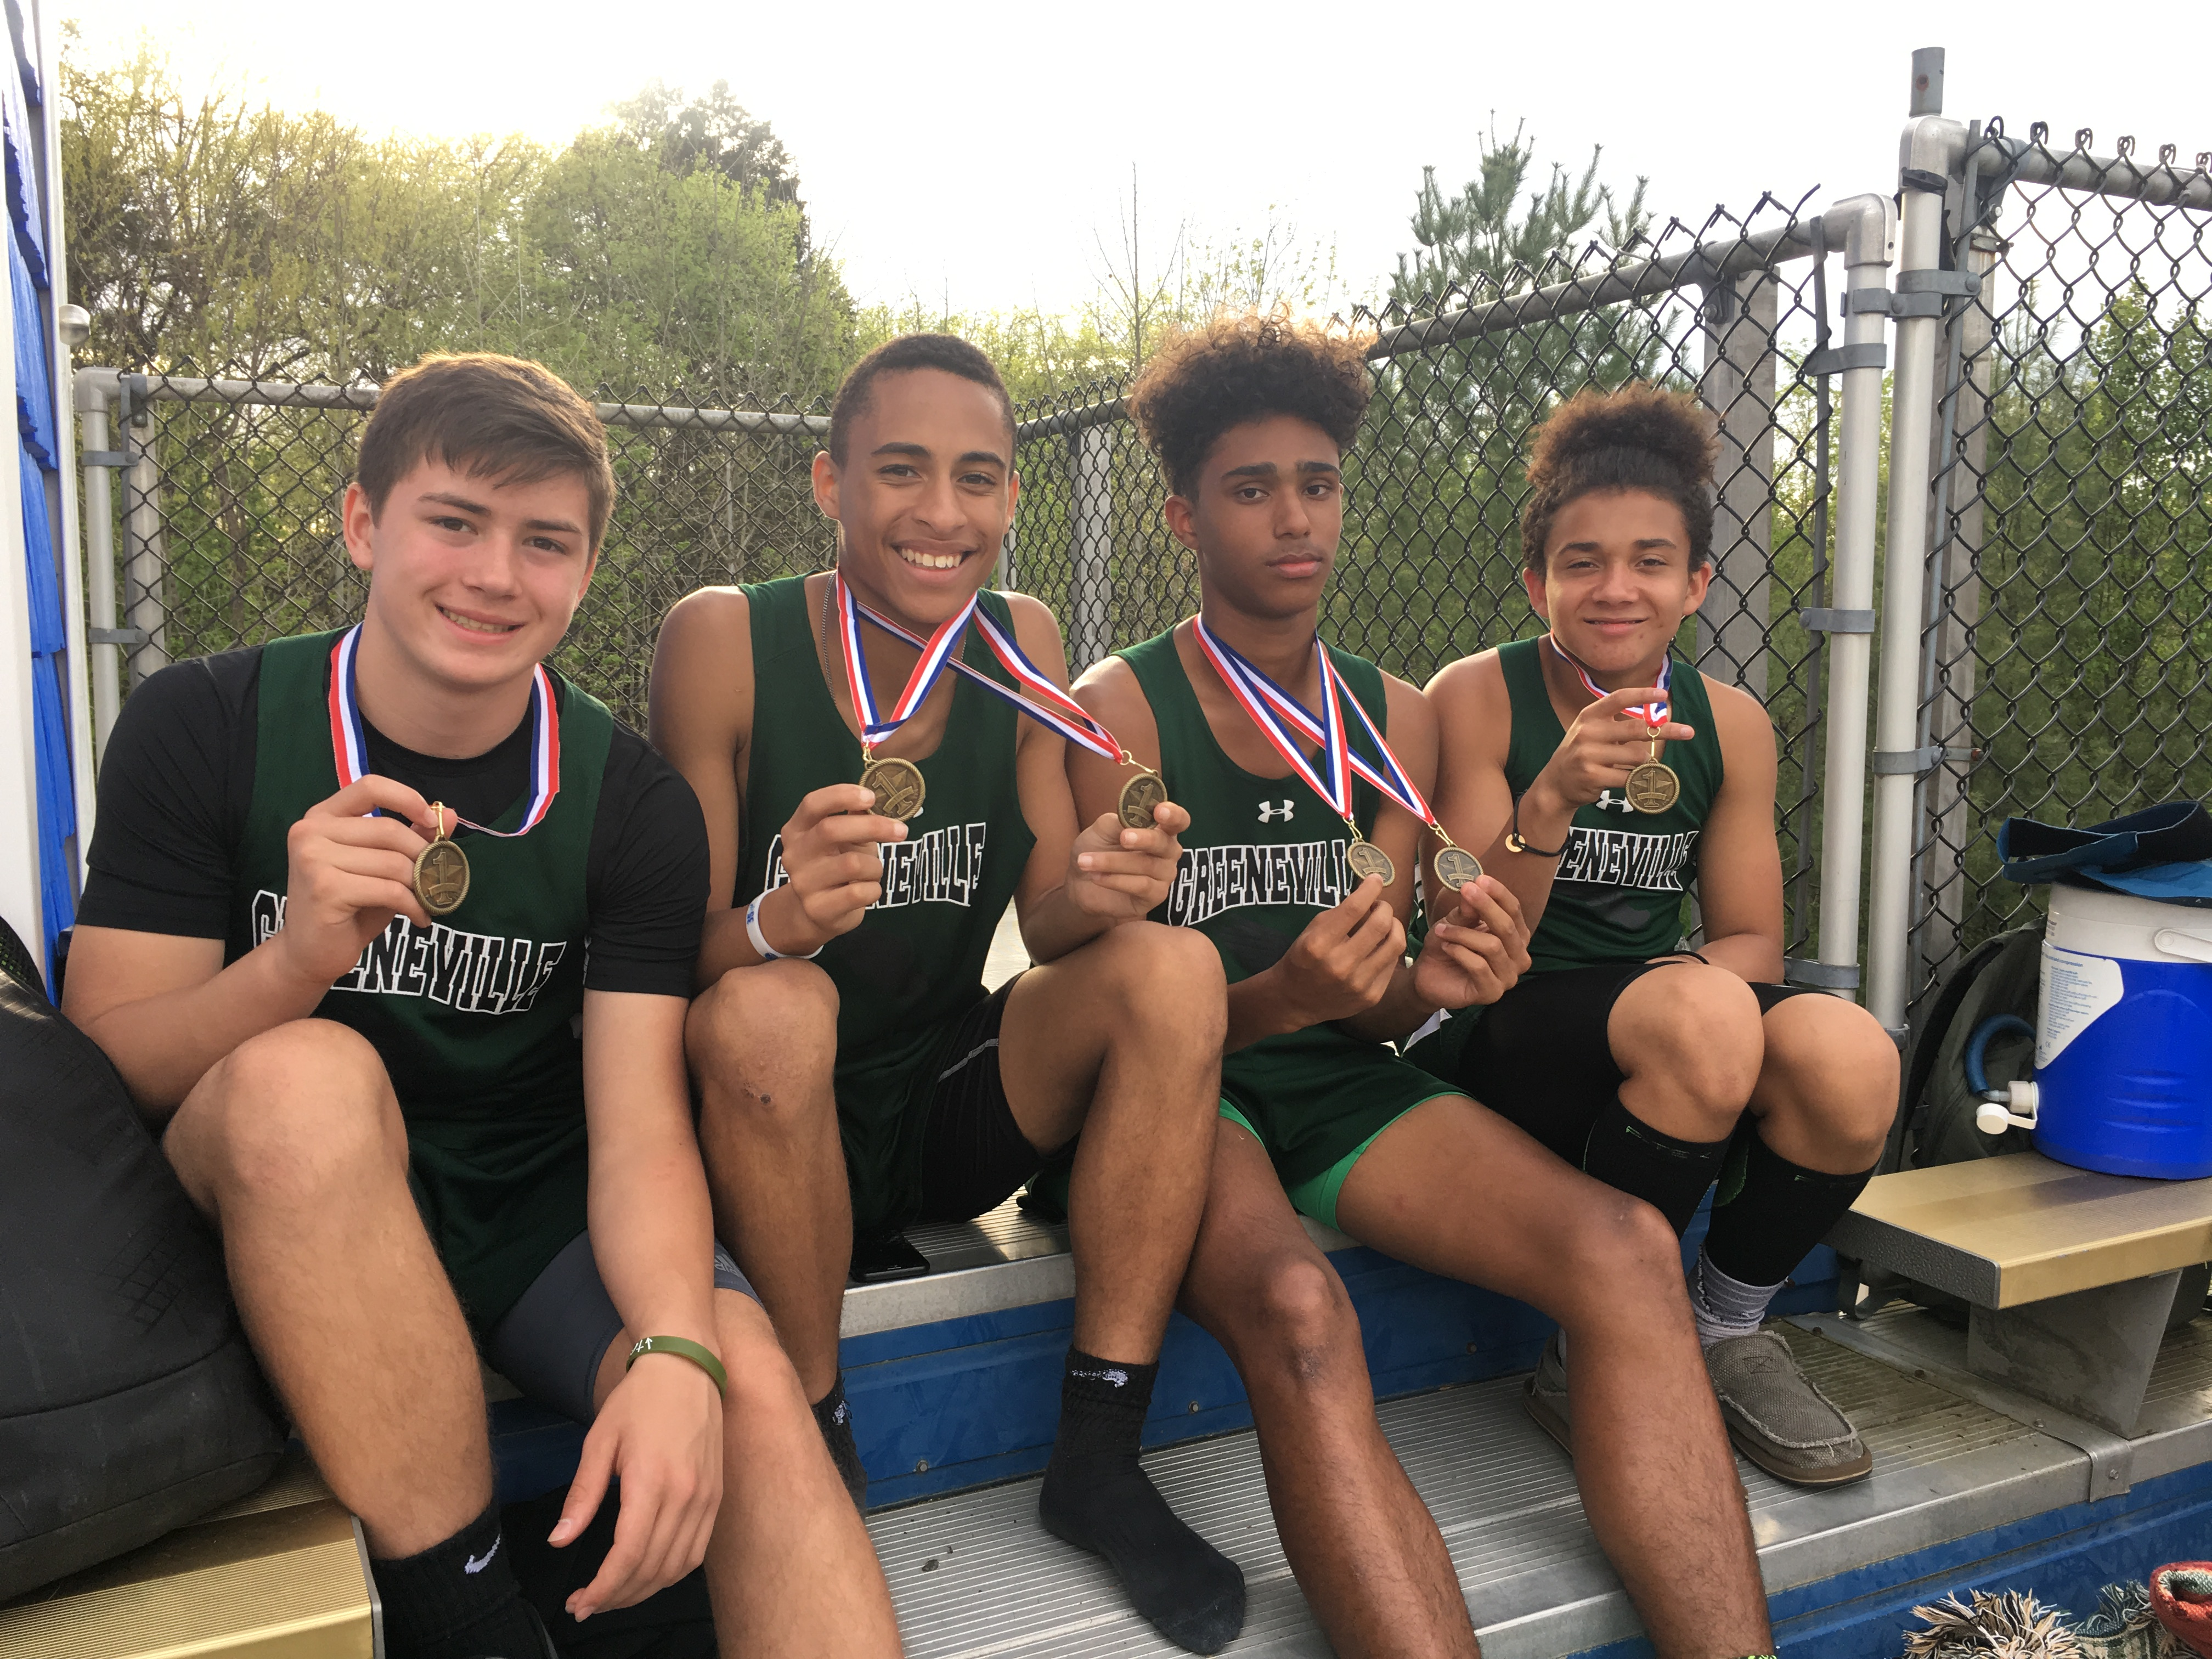 picture of boys with medals